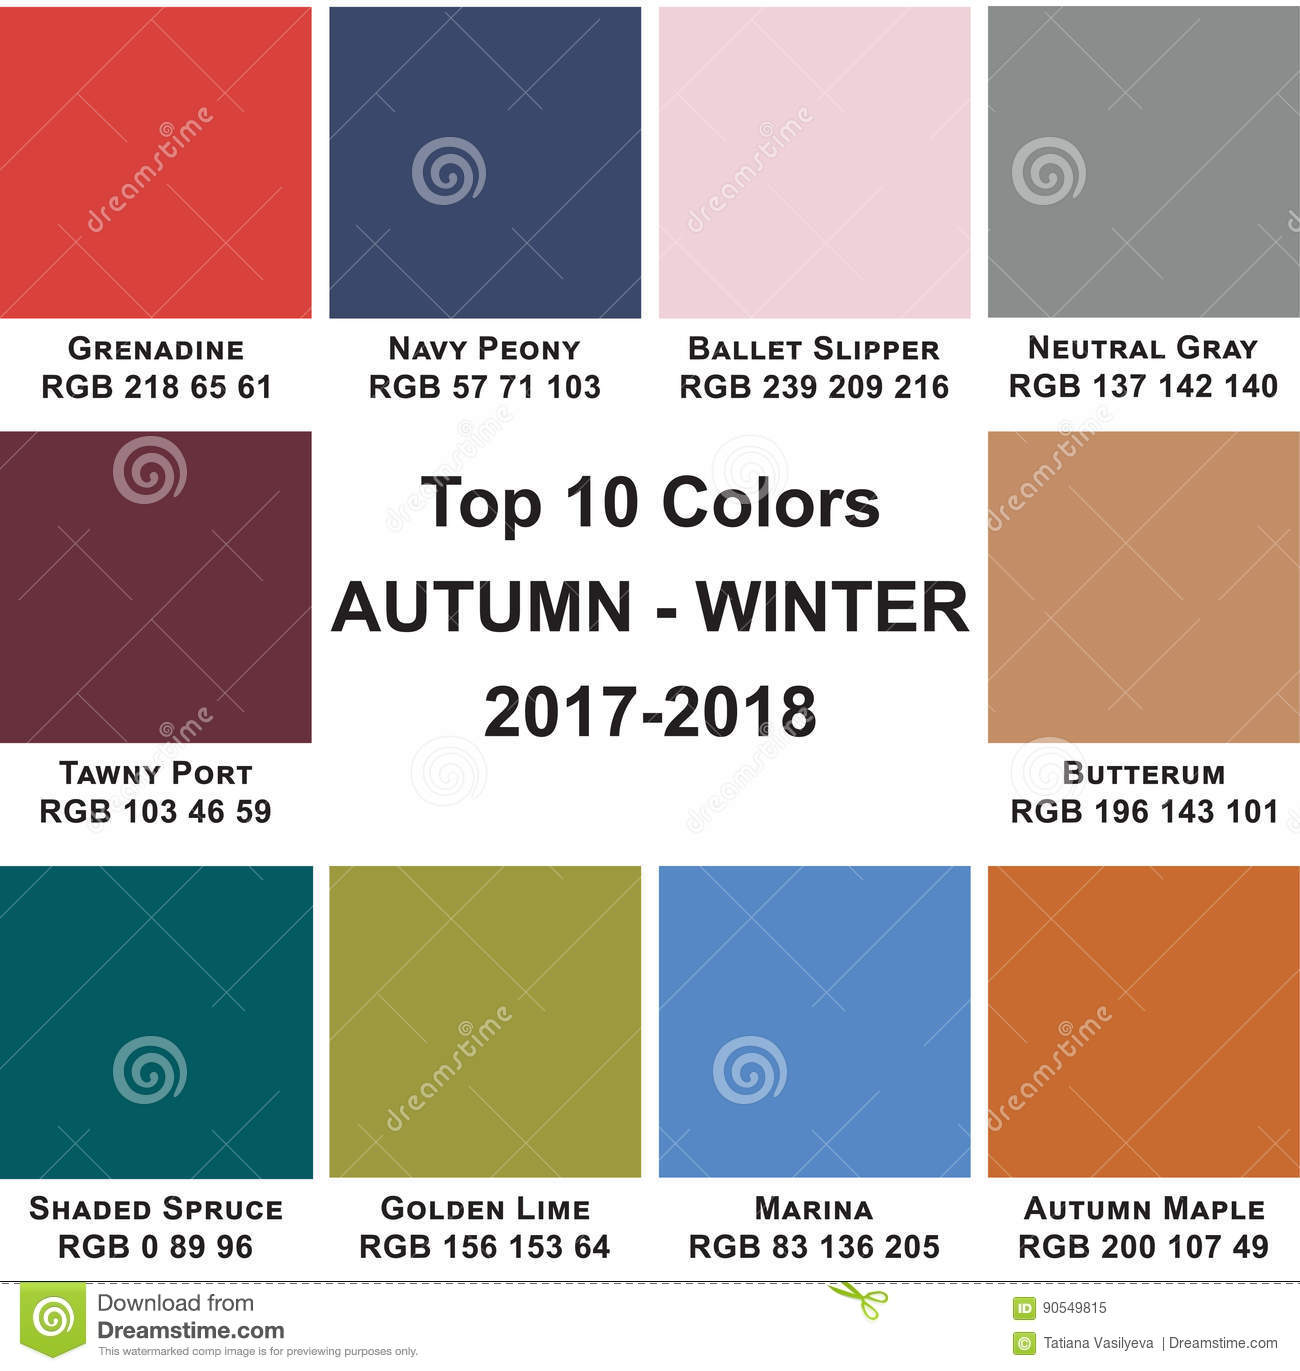 Top 10 Colors Autumn Winte 2017 2018 Royalty Free Stock